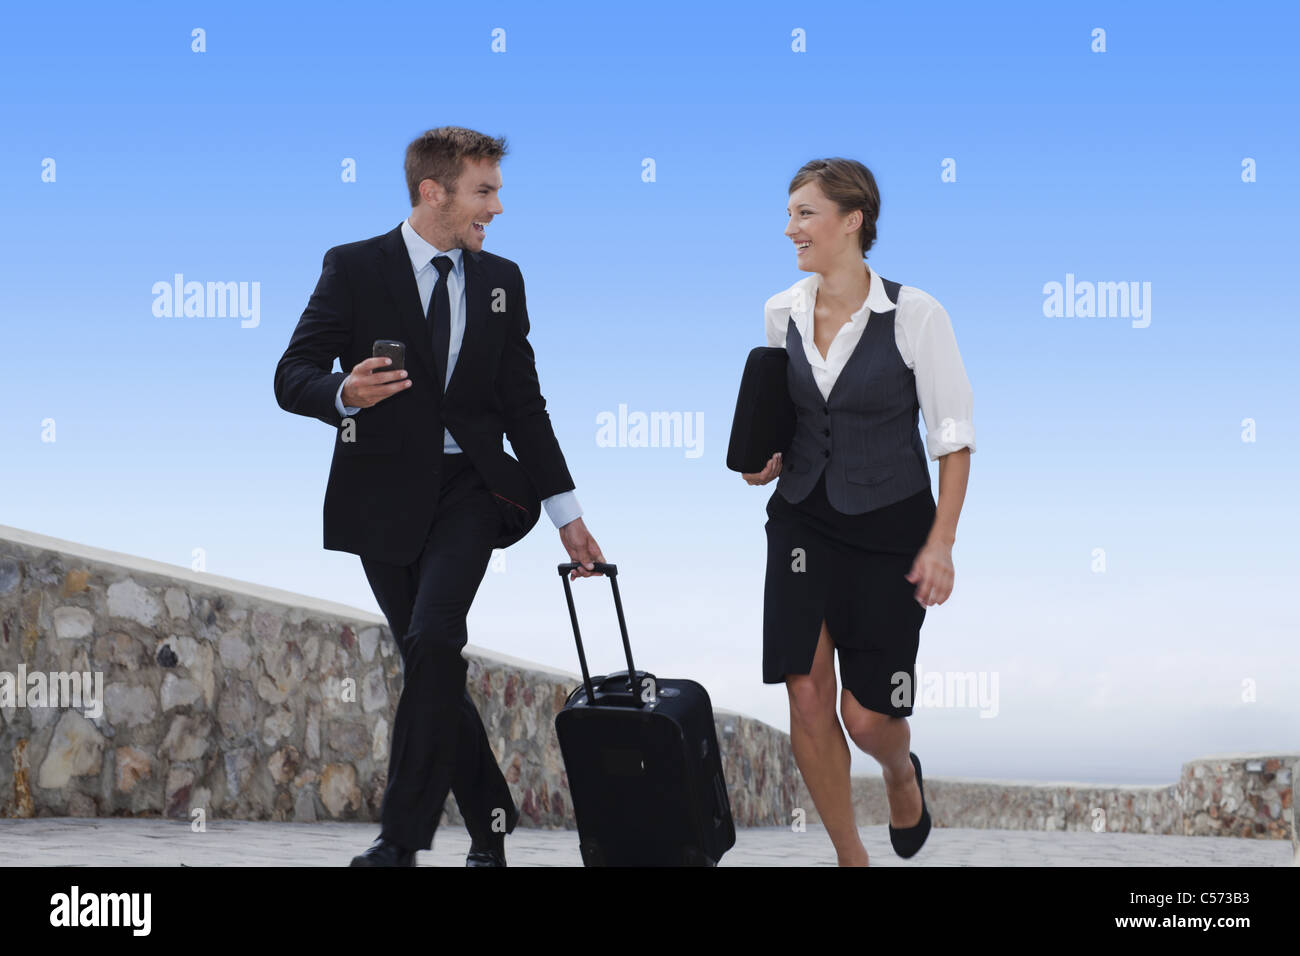 Business people running with luggage Stock Photo